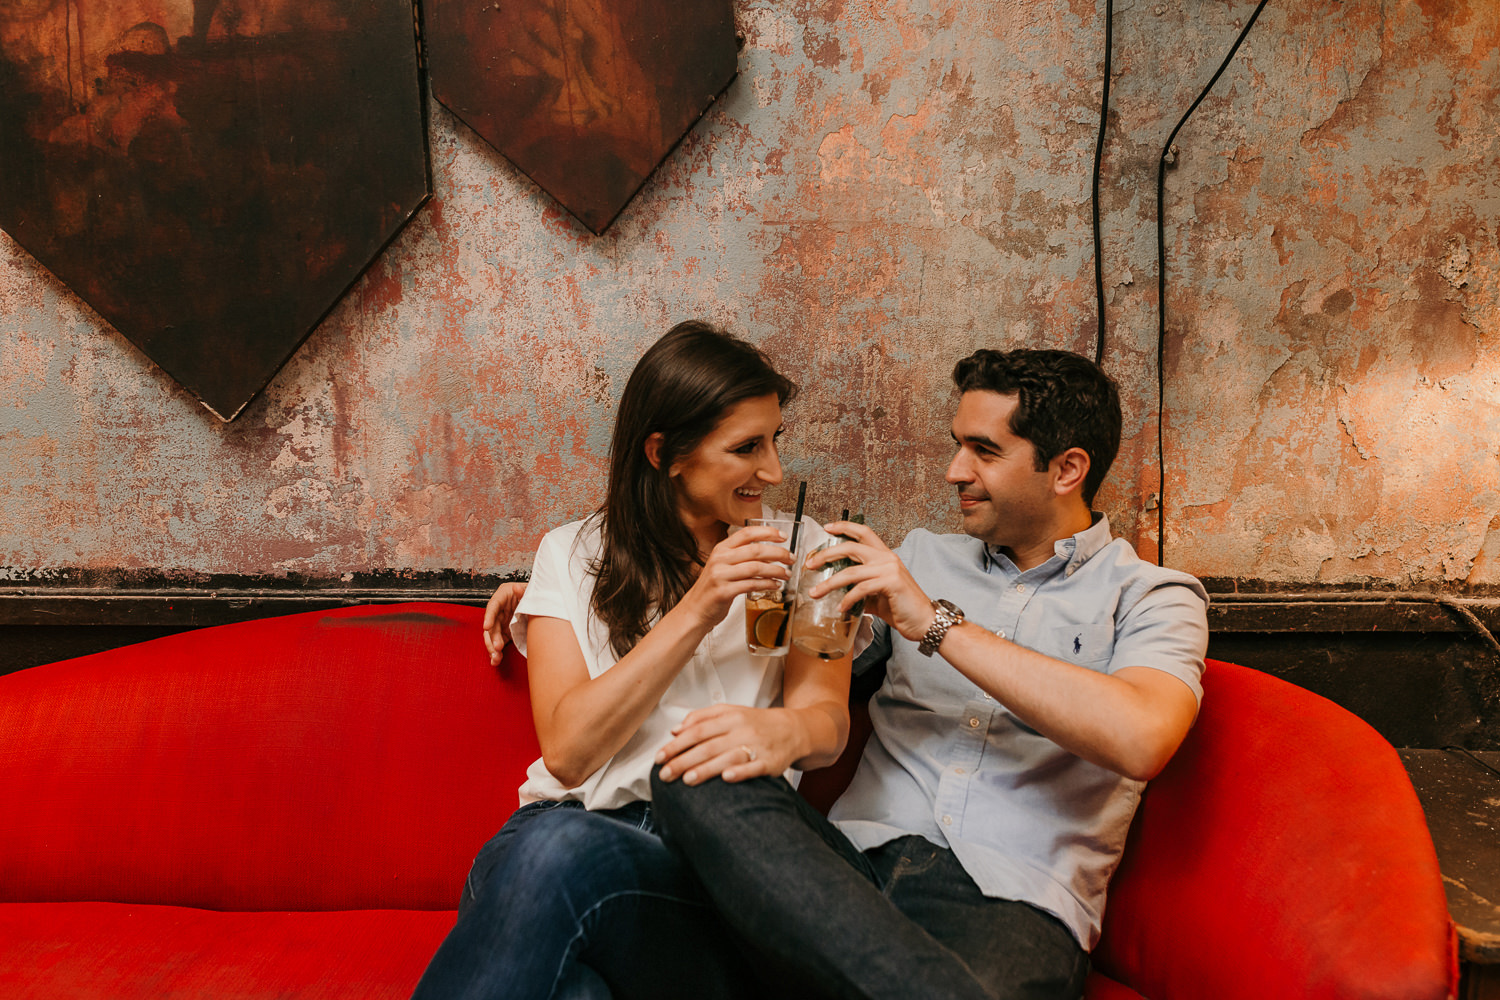 closeup of couple sitting together toasting and smiling at each other on red couch